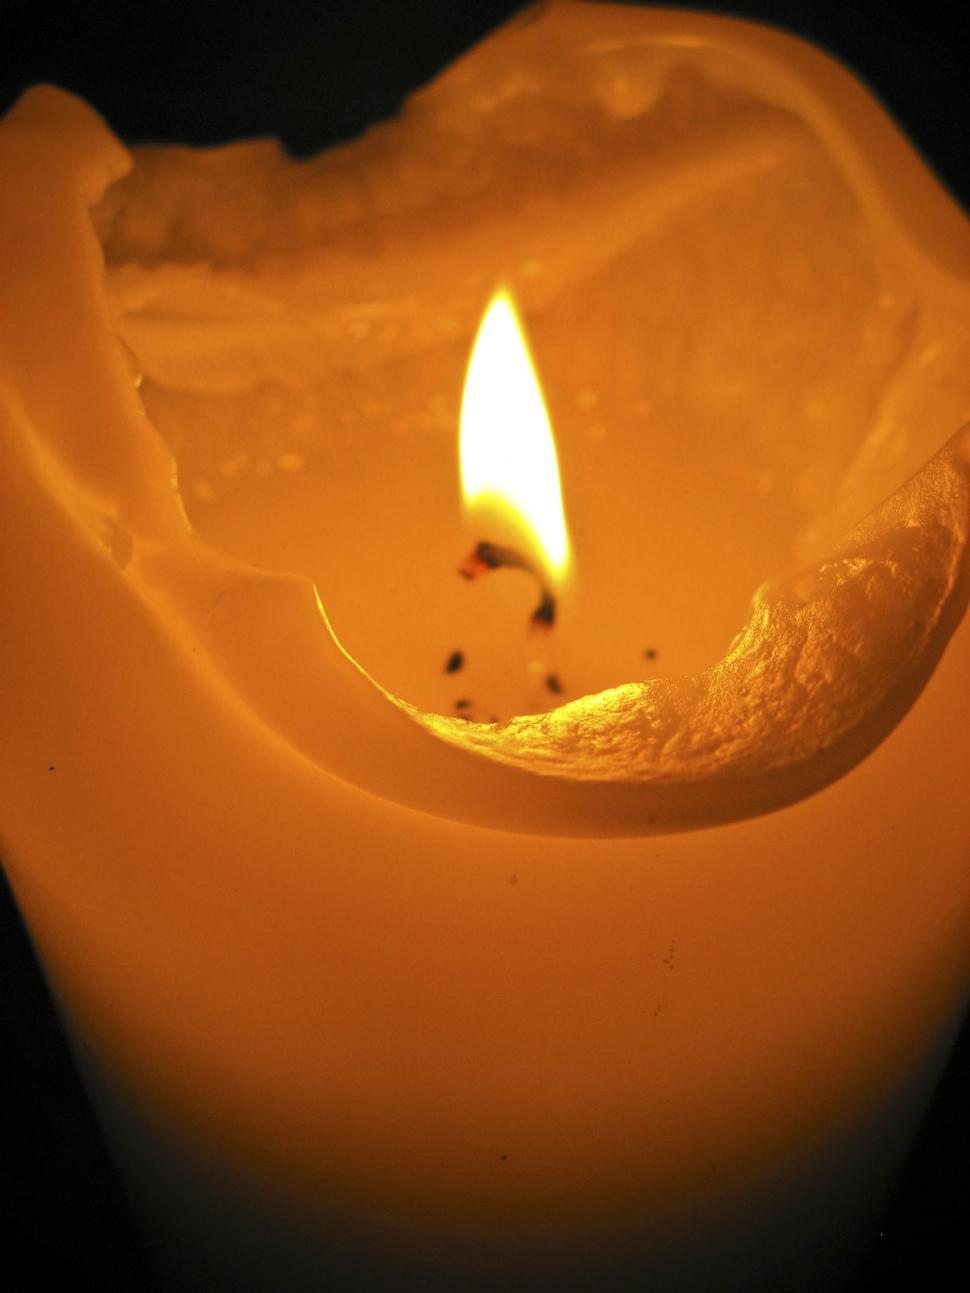 Download Free Stock Photo of candle